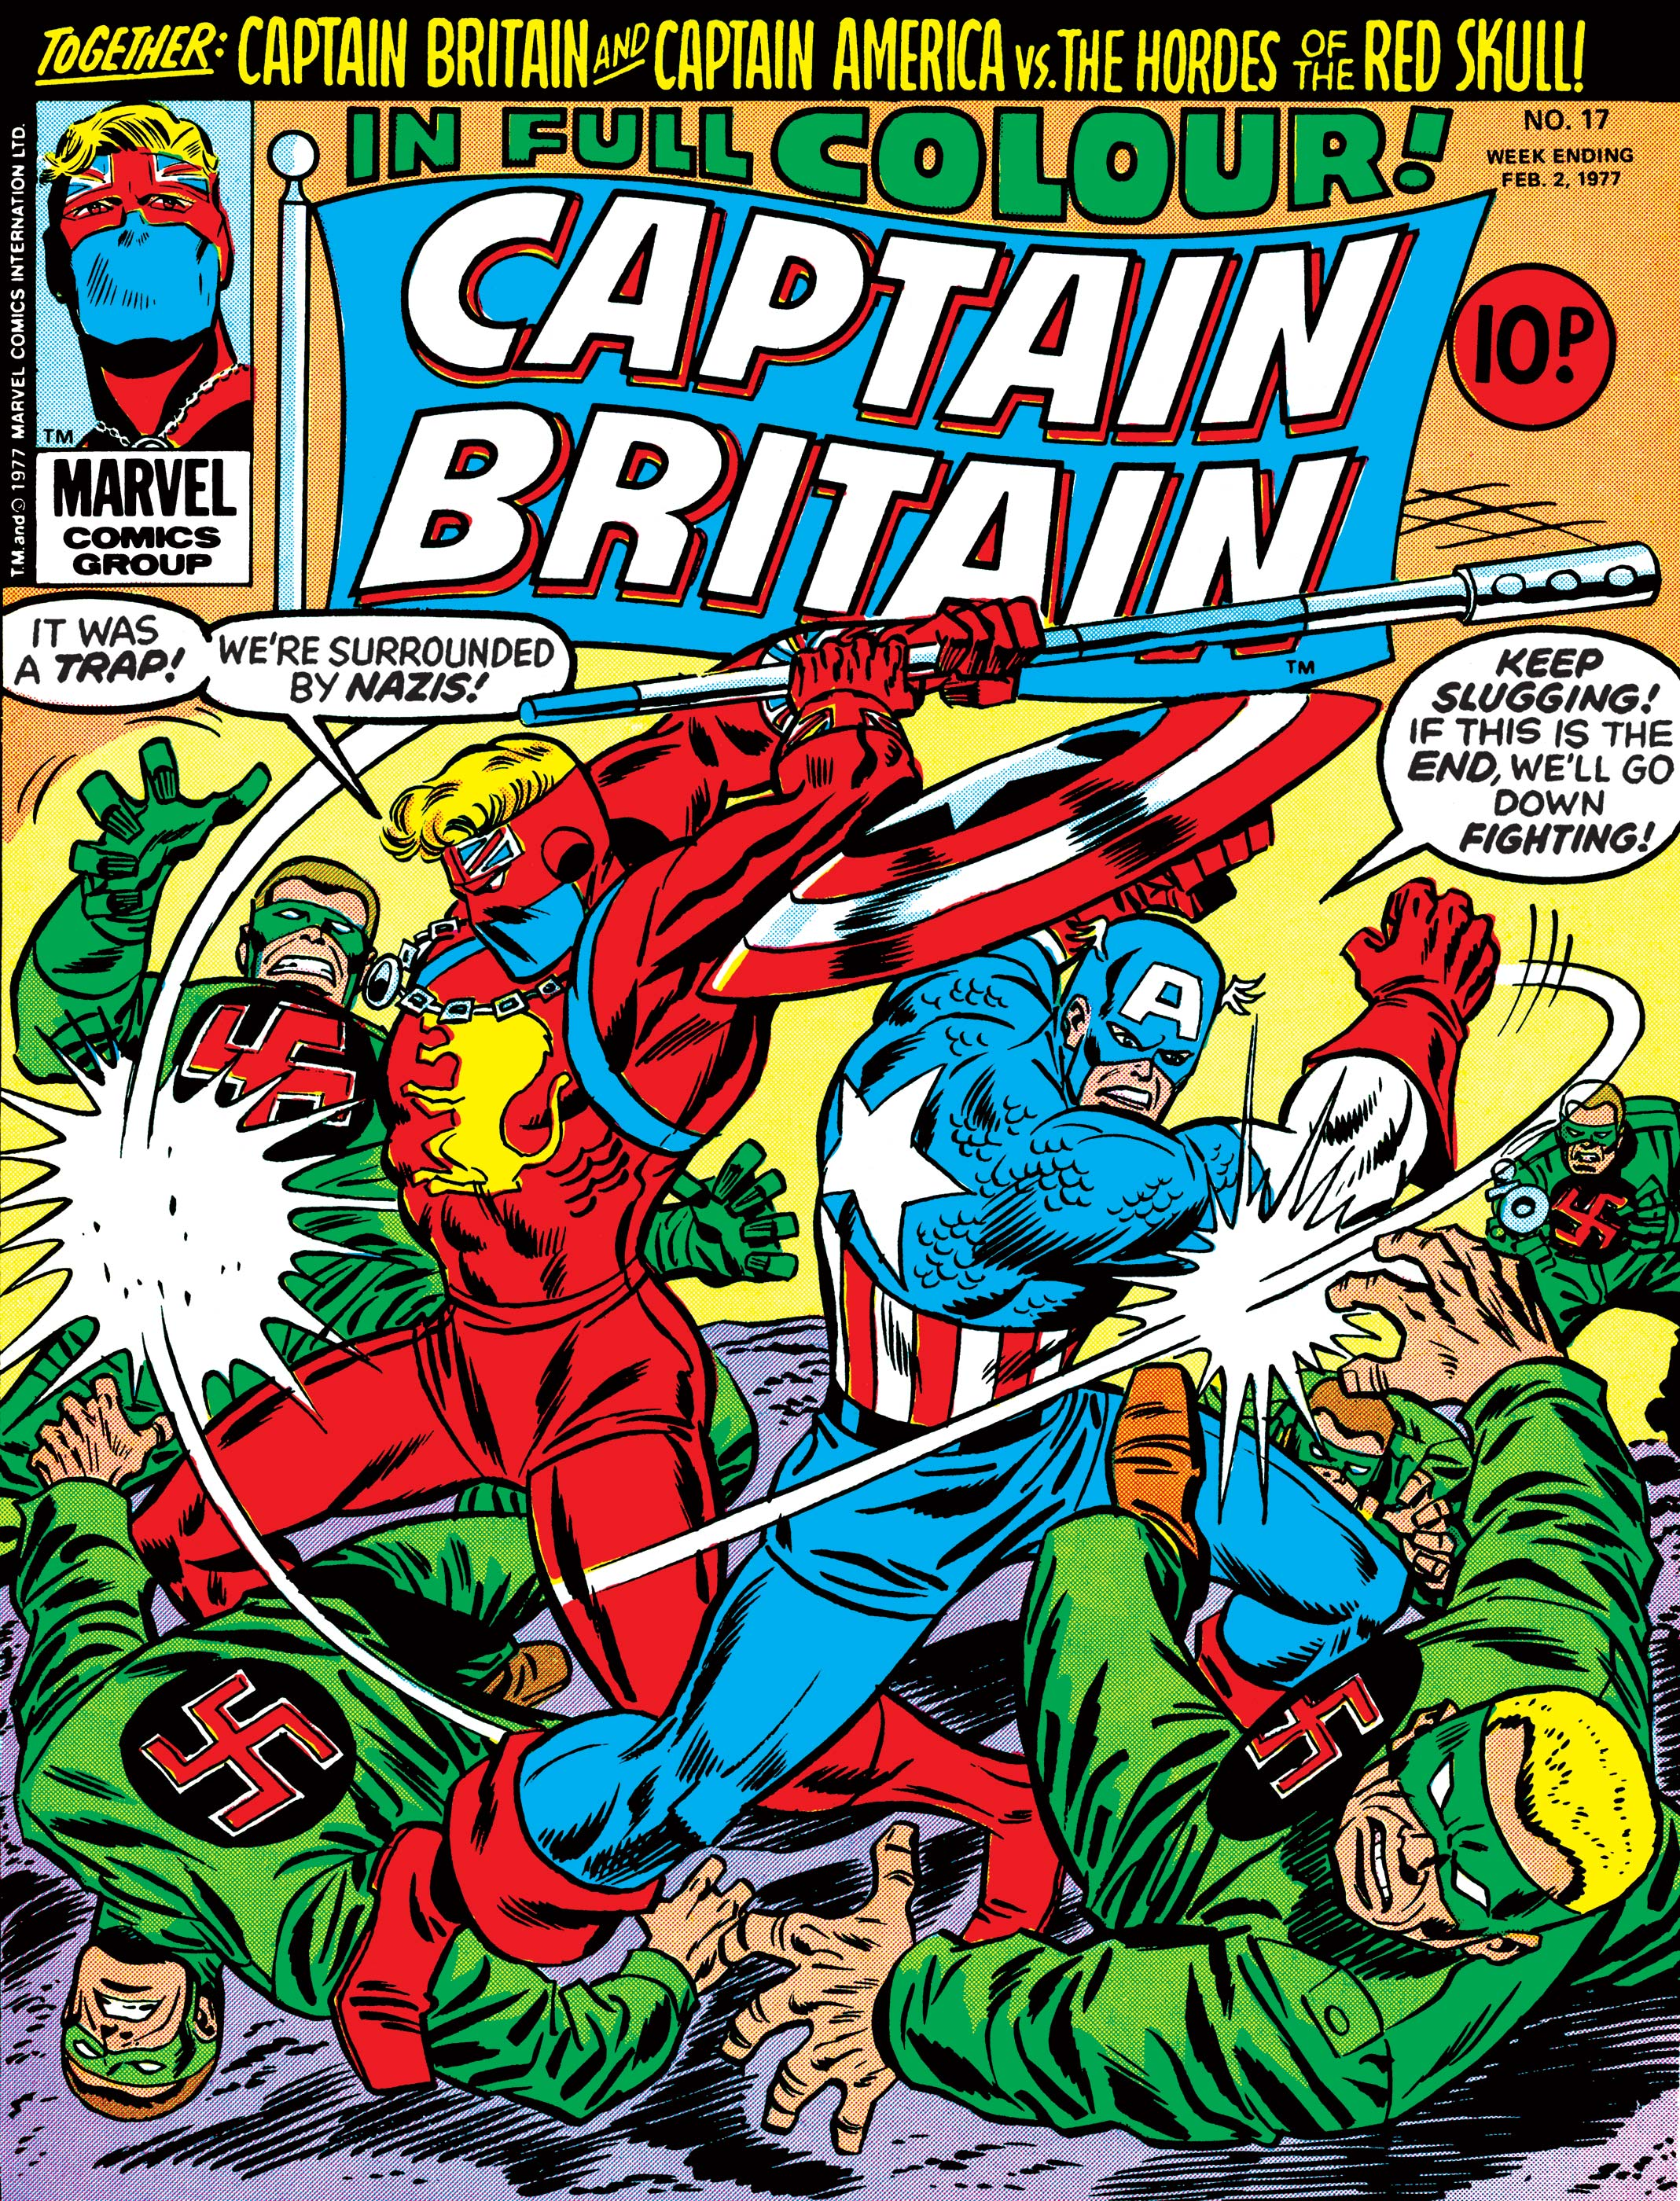 Captain Britain (1976) #17